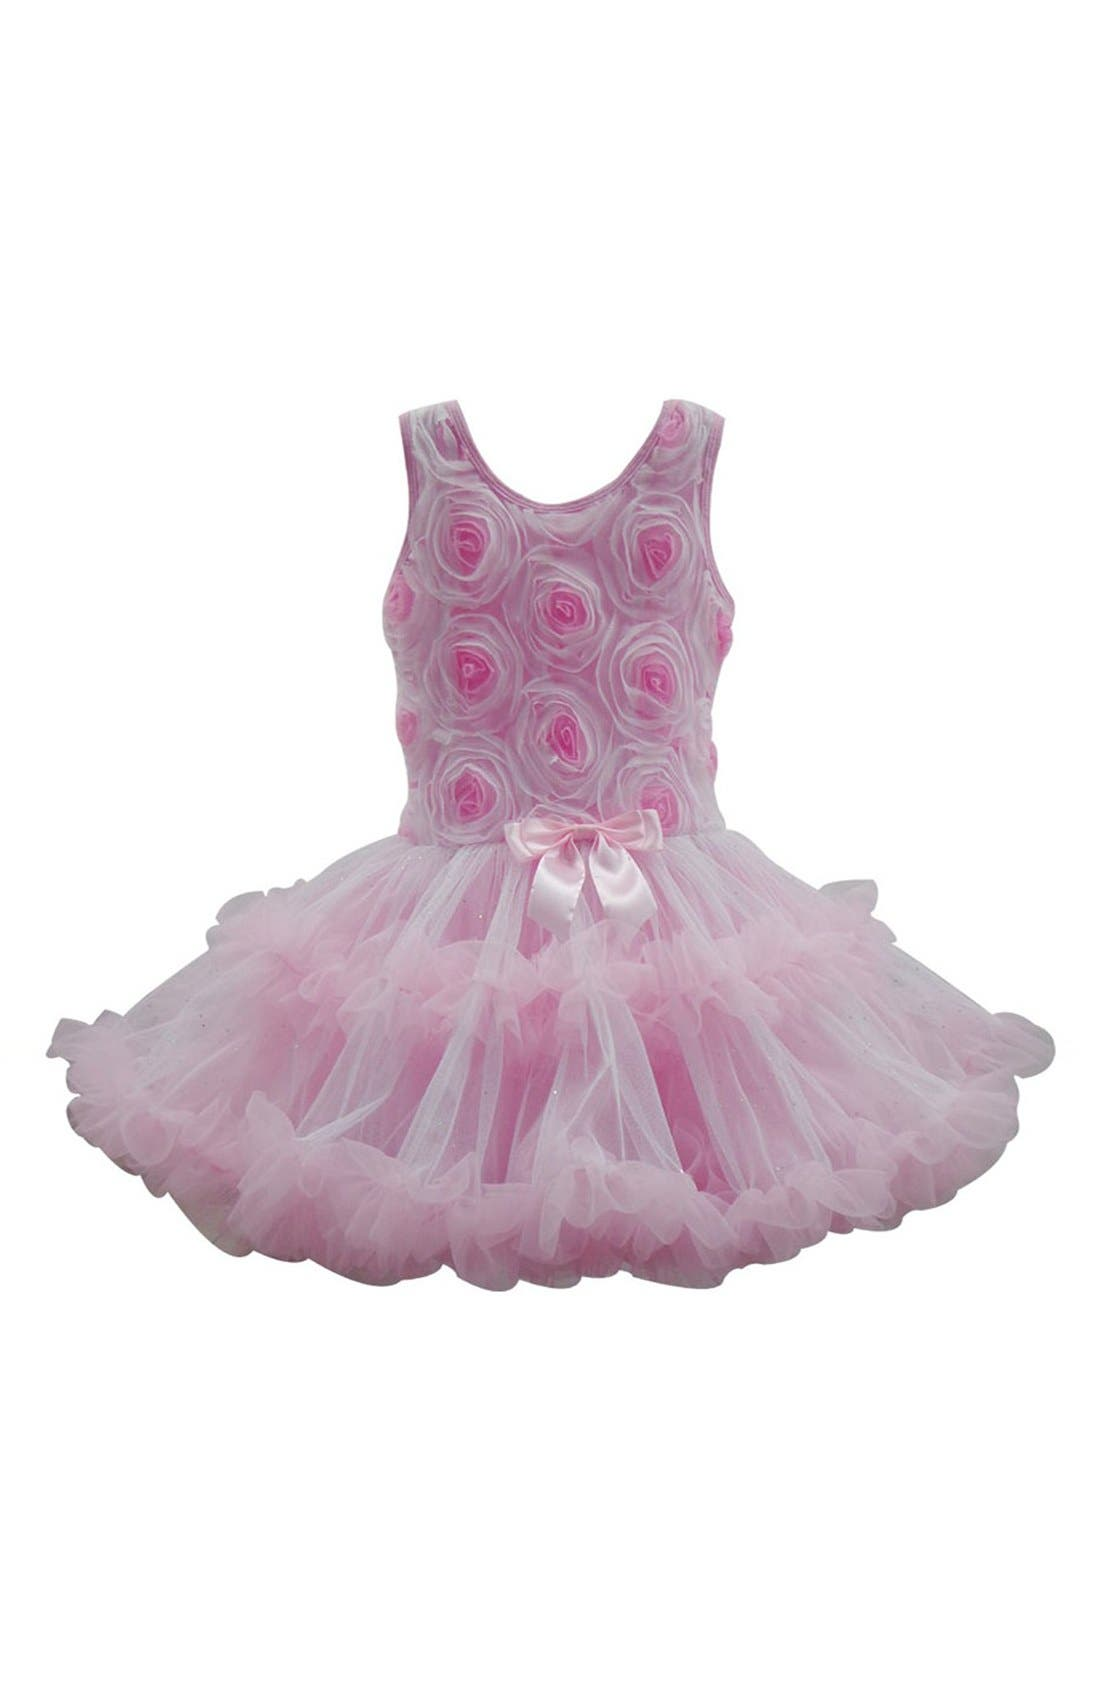 POPATU Ribbon Rosette Flower Petidress